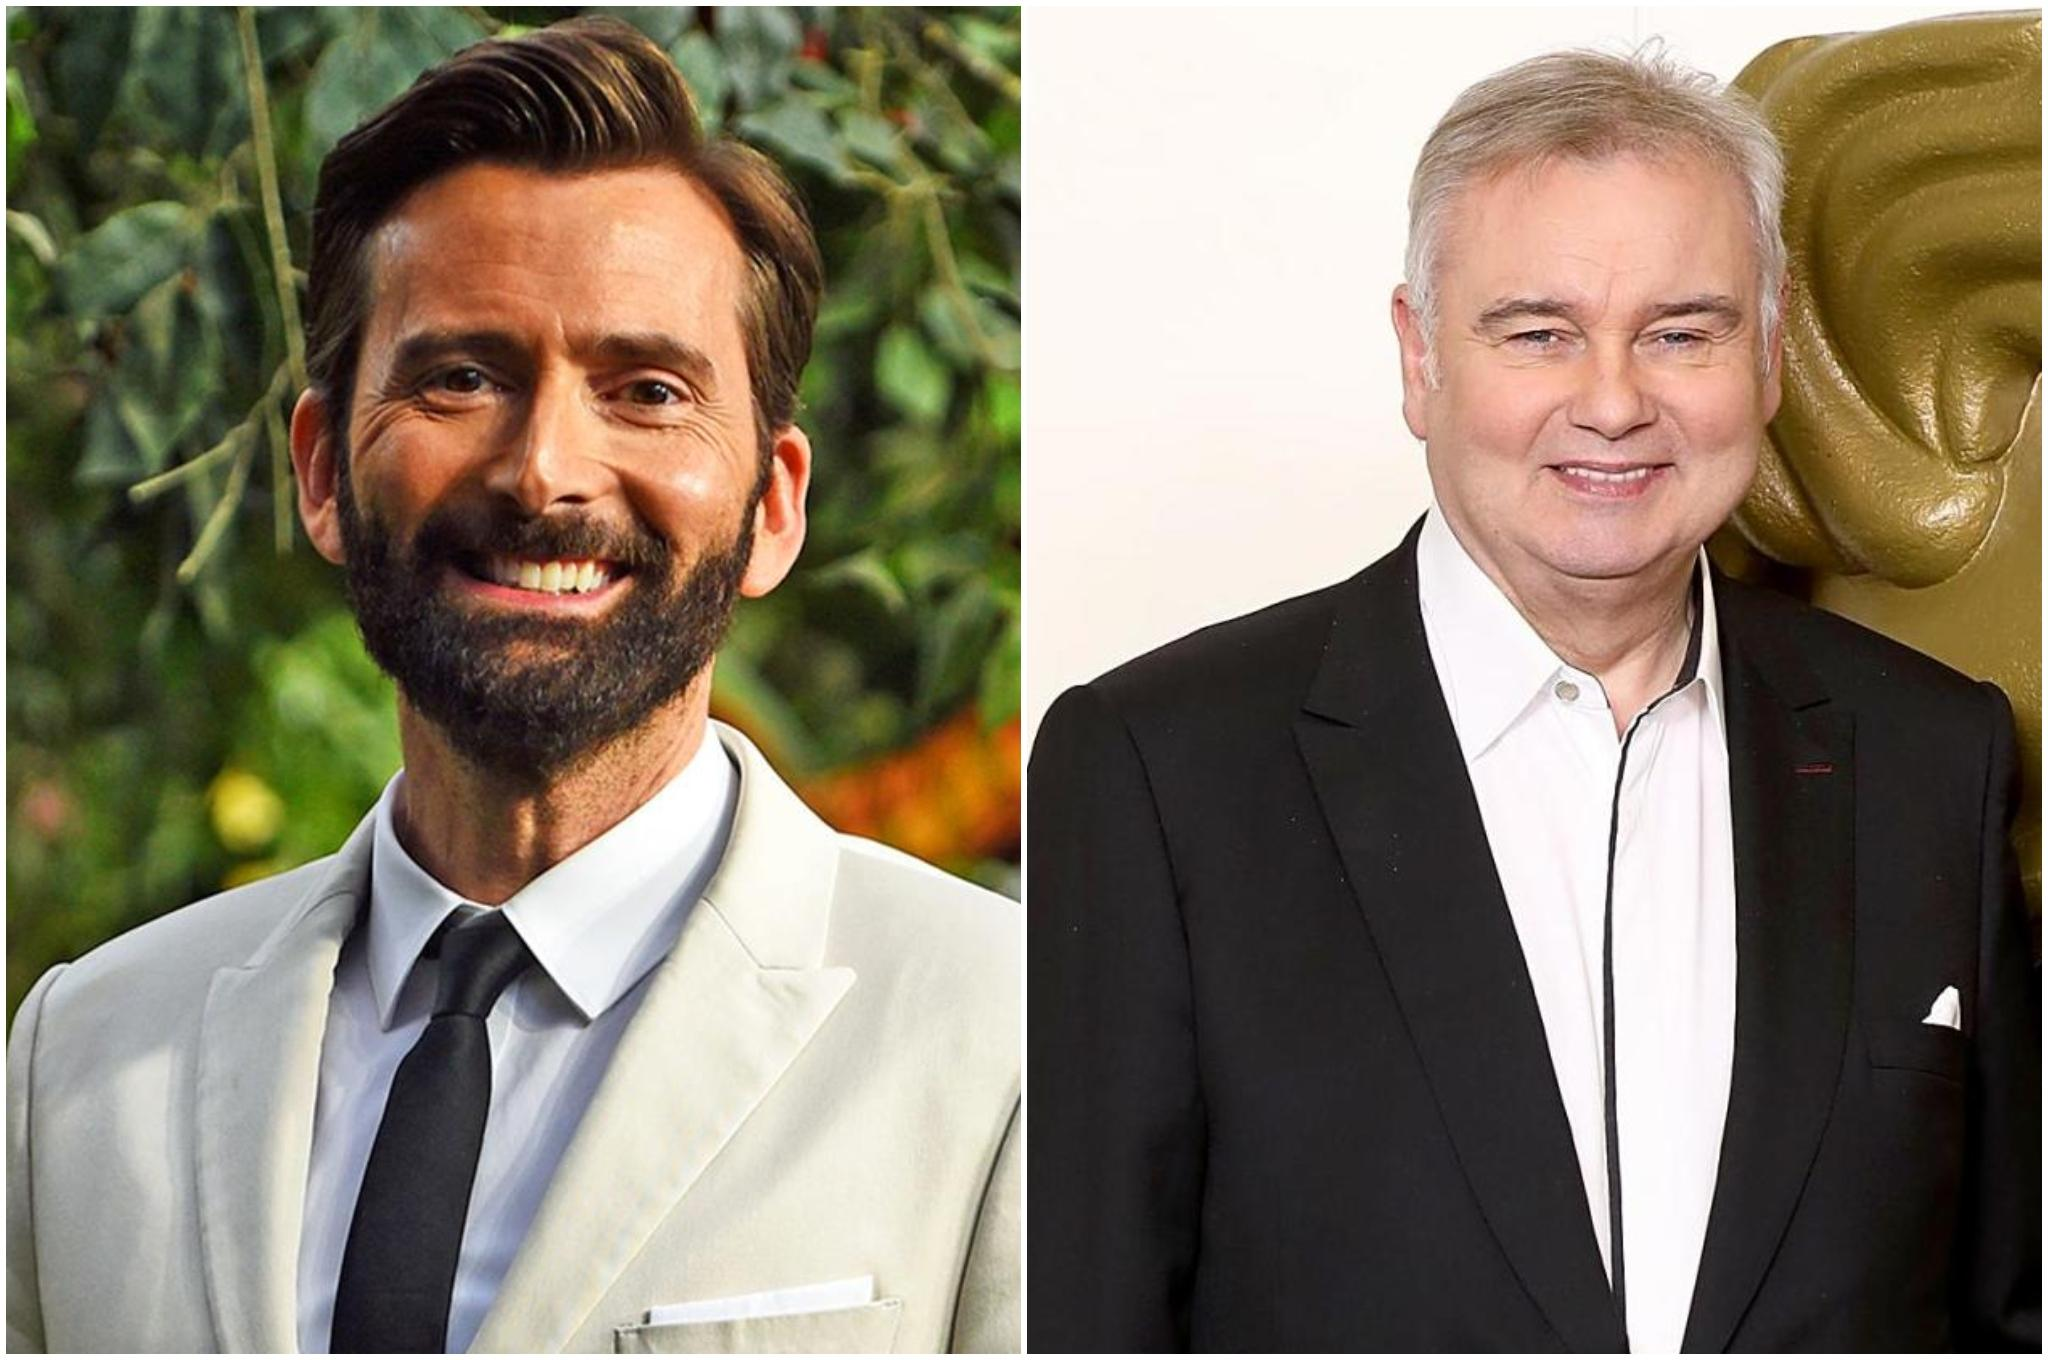 Have I Got News For You: David Tennant jokes that Eamonn Holmes lives in a 'tin foil bungalow'